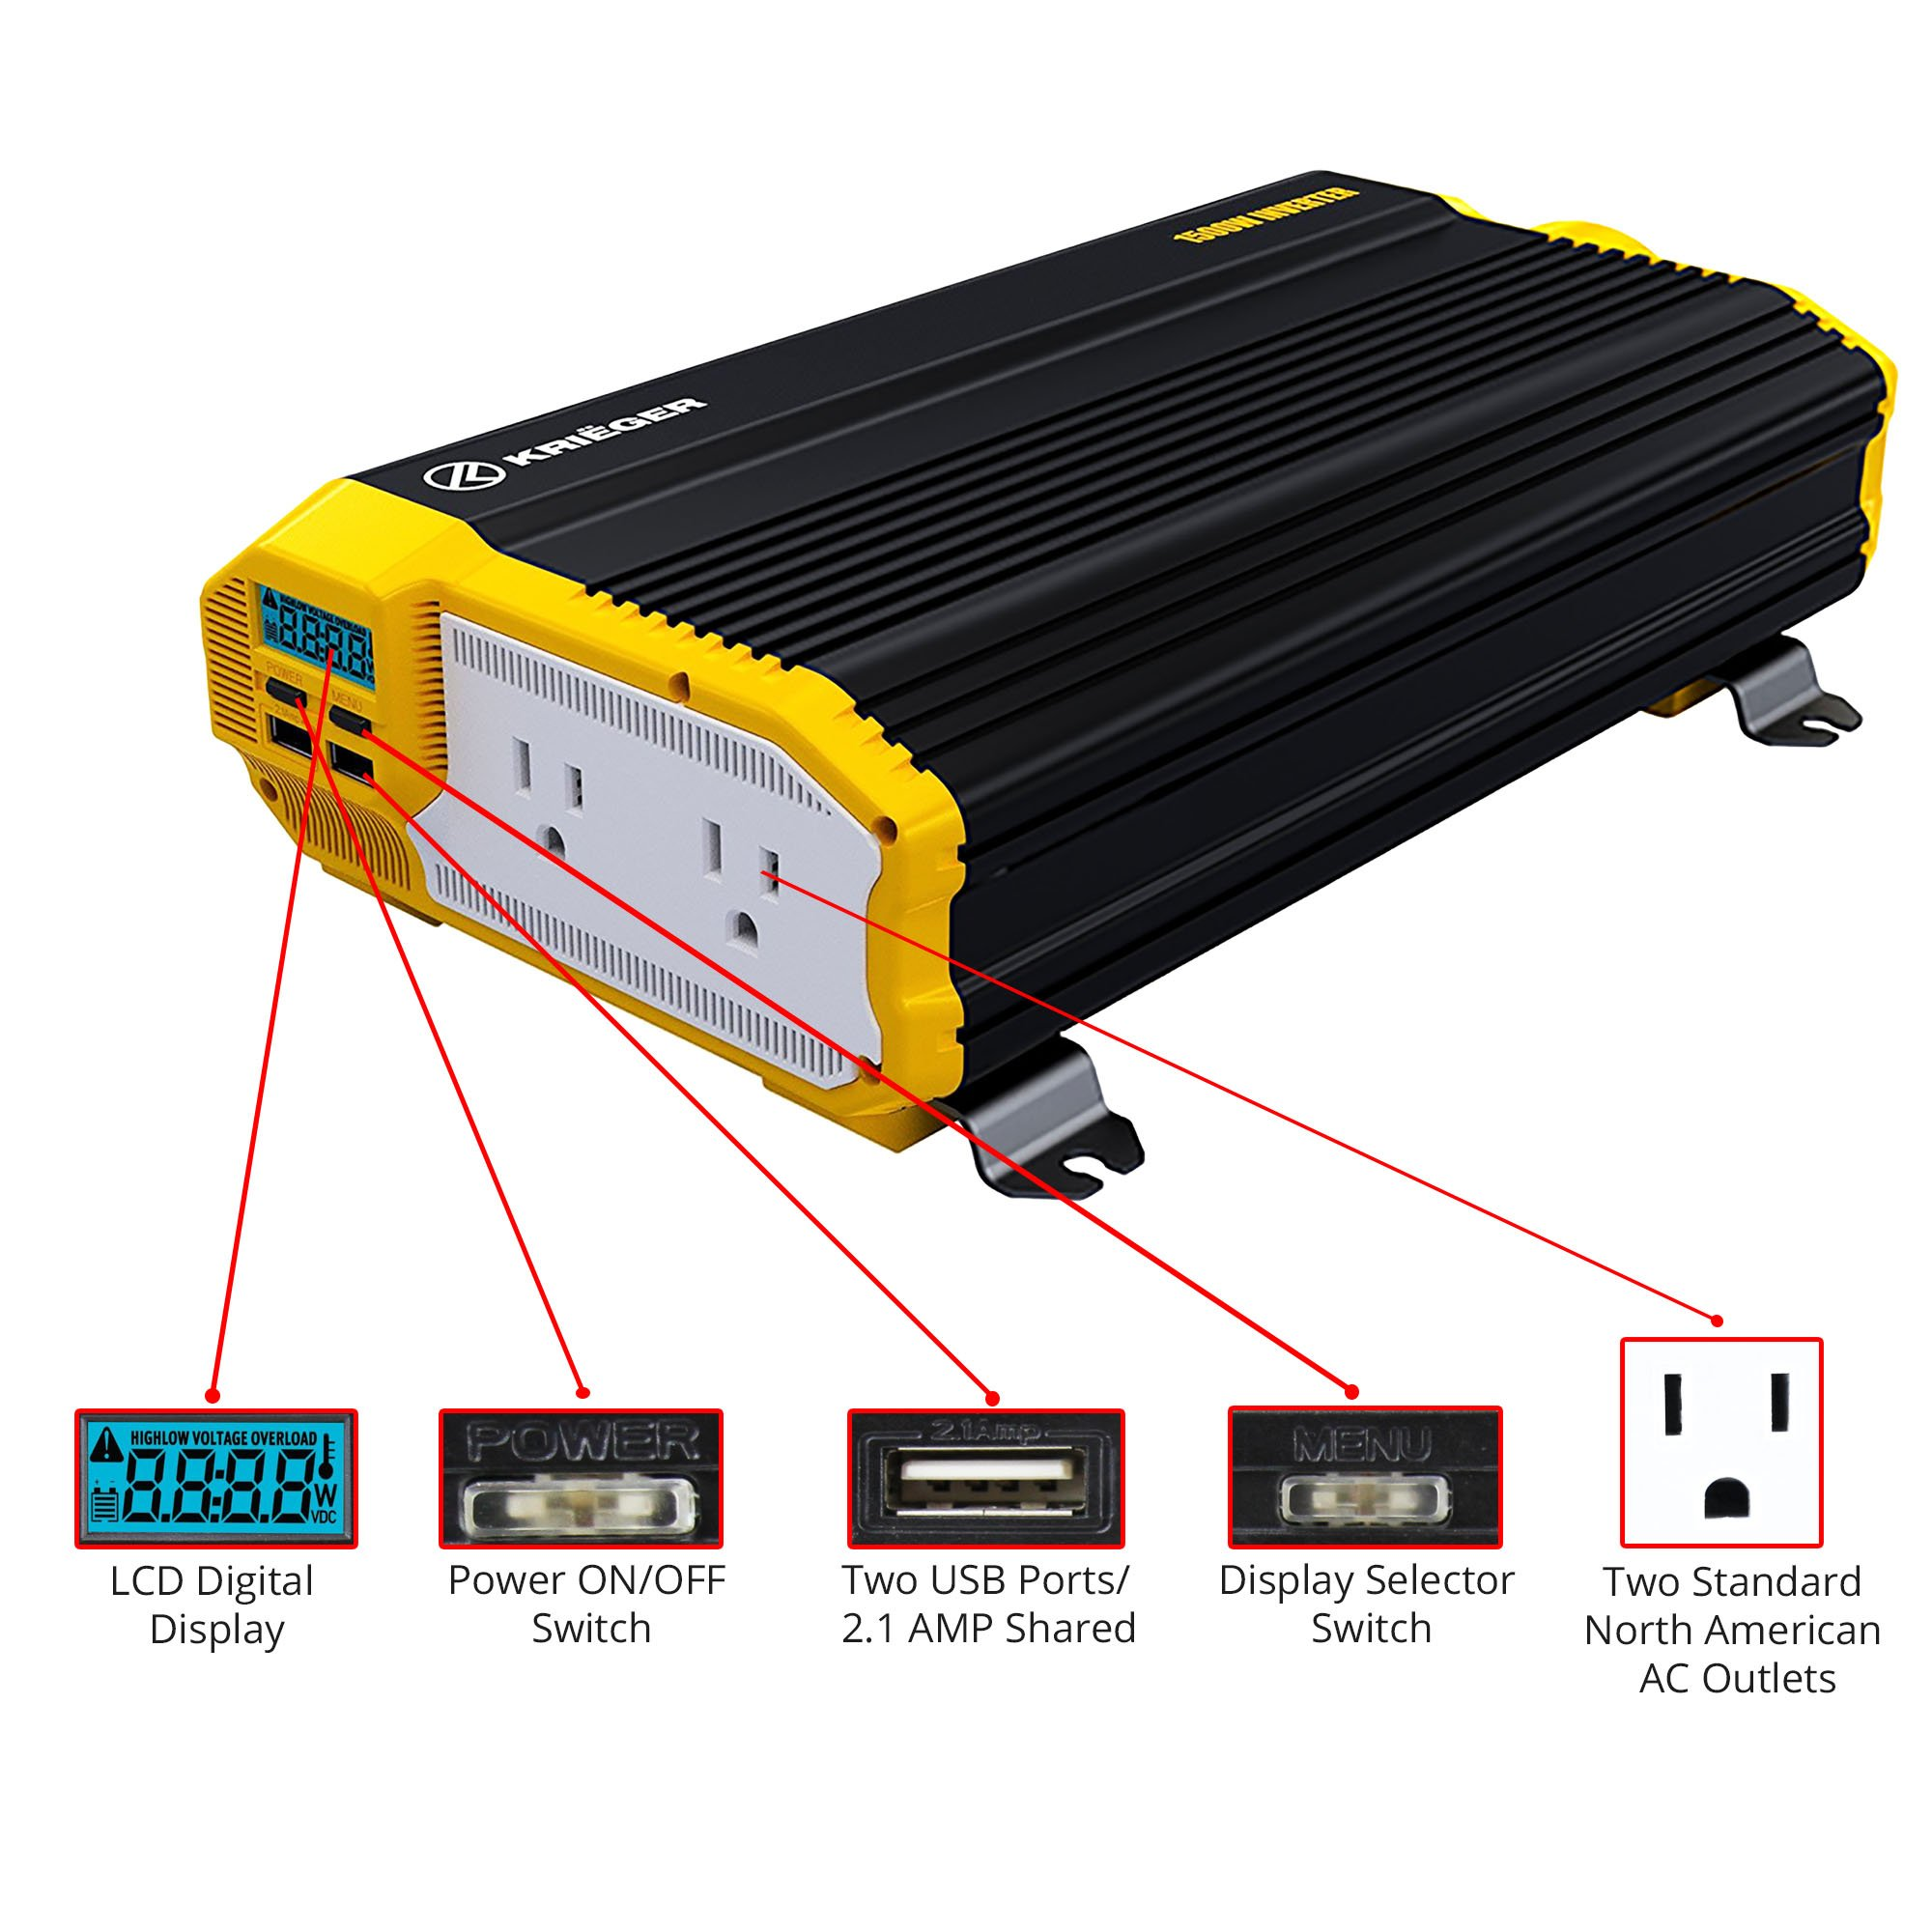 KRIËGER 1100 Watt 12V Power Inverter Dual 110V AC Outlets, Car Inverter Installation Kit Automotive Back Up Power Supply For Blenders, Vacuums, Power Tools. MET Approved To UL and CSA by KRIEGER (Image #3)